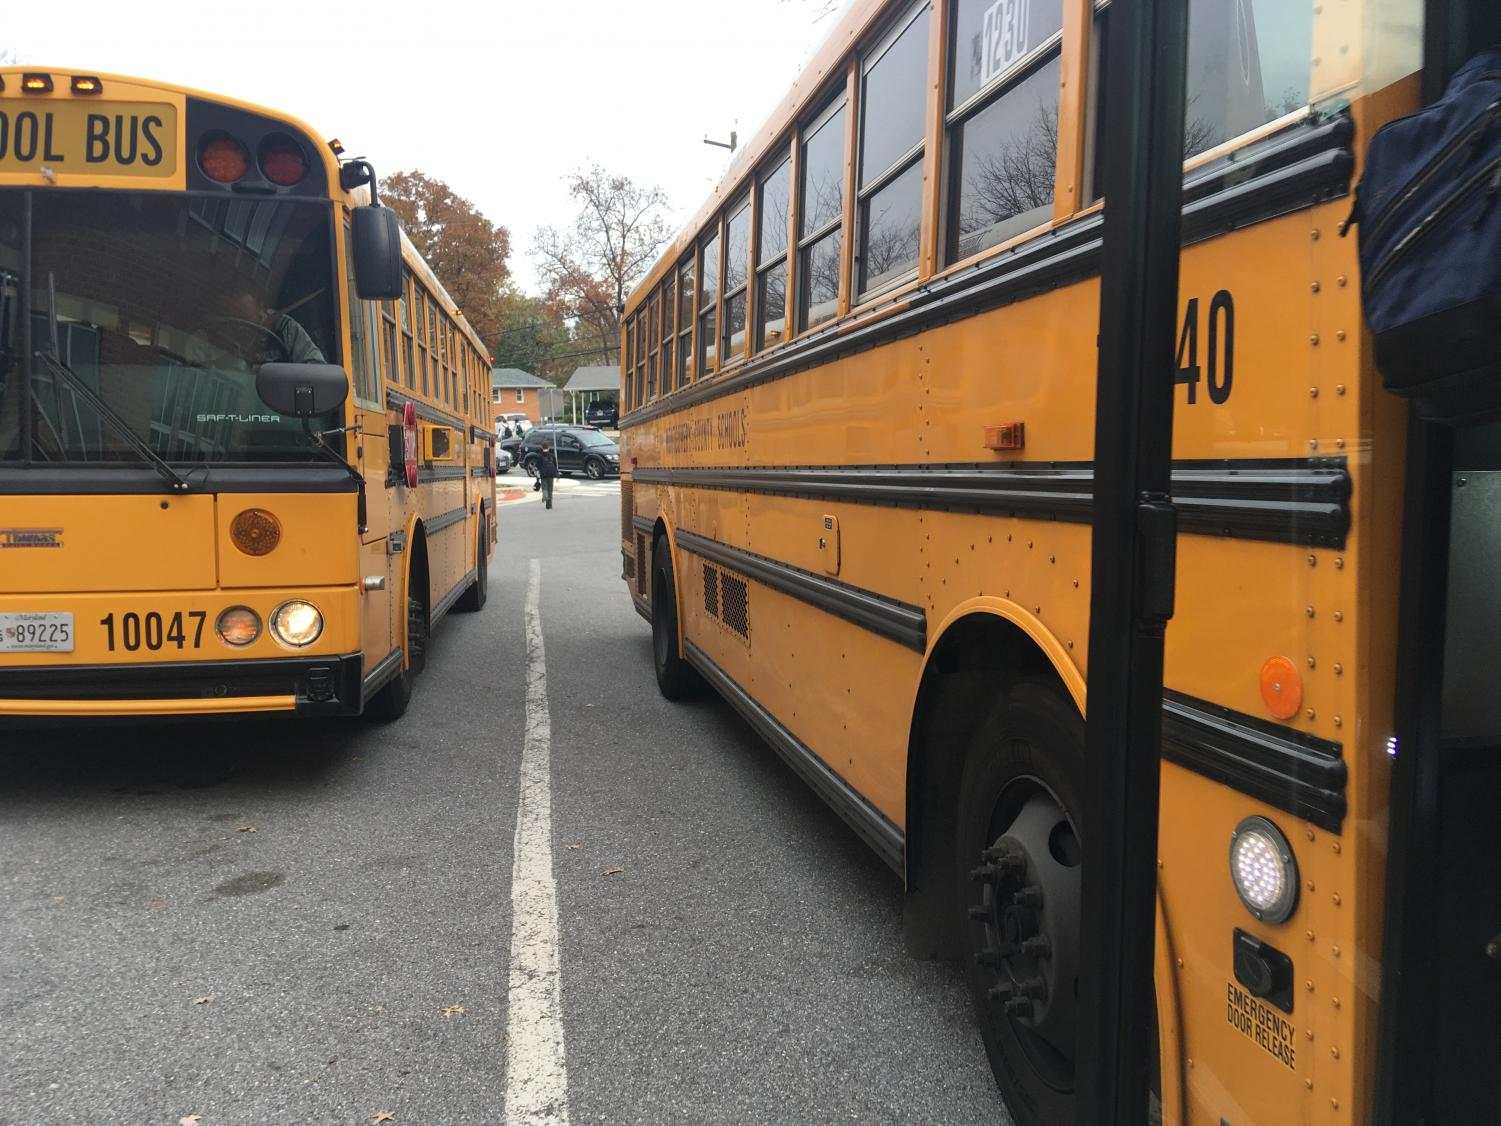 On any given morning, WCHS students come to school on buses. Buses would come later, if school start times are pushed back.